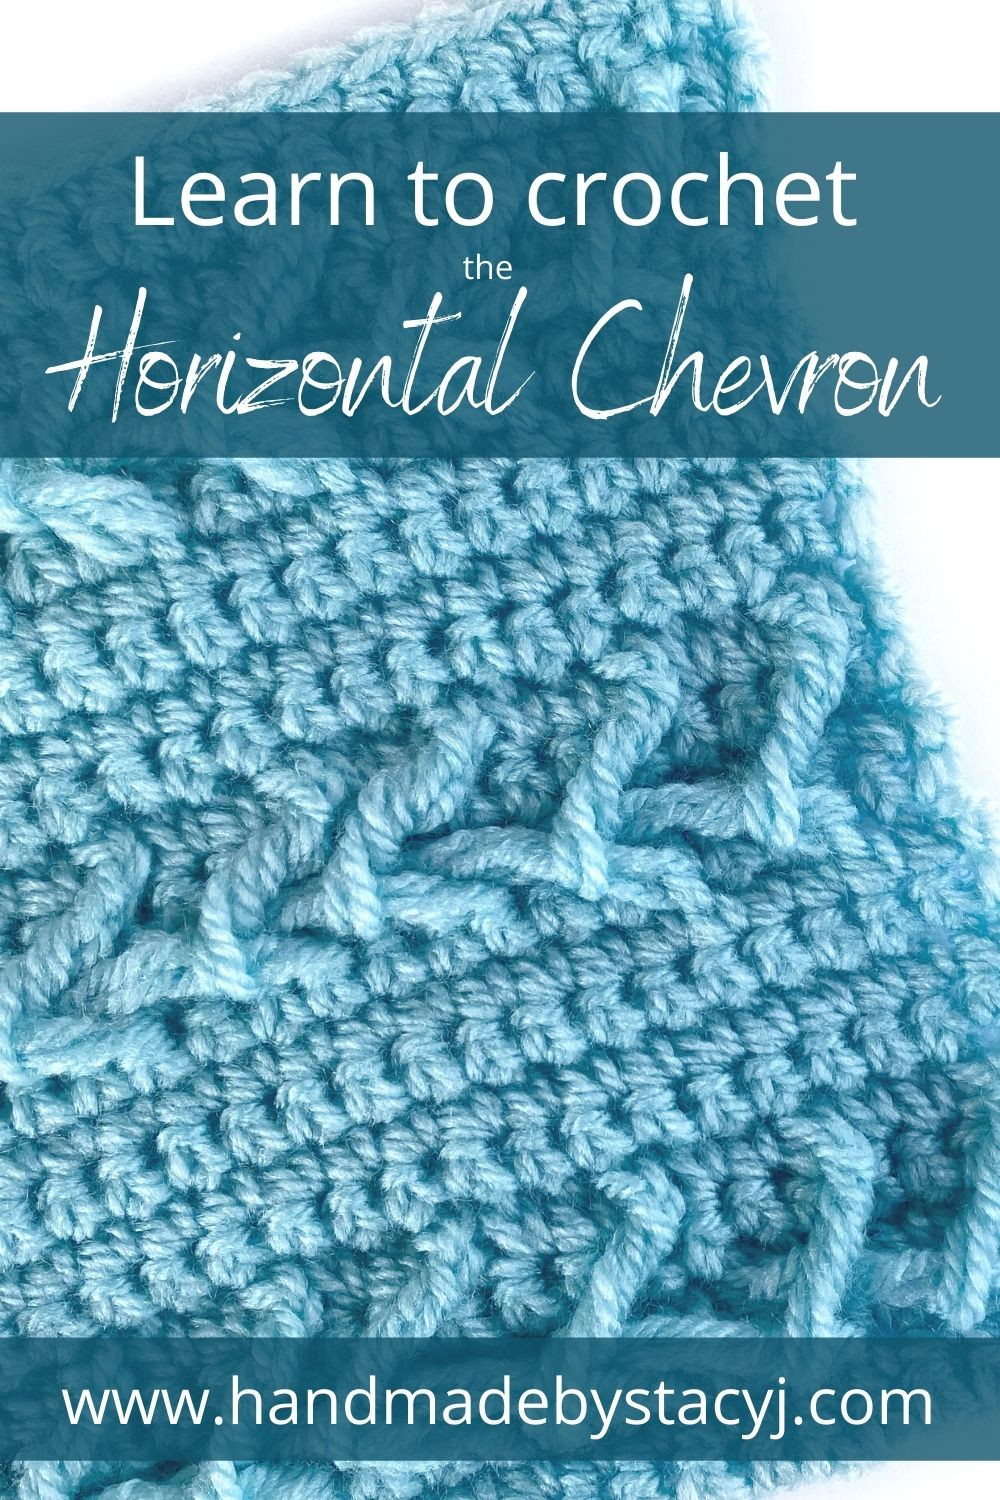 Image of crocheted Horizontal Chevron stitch by Handmade by Stacy J